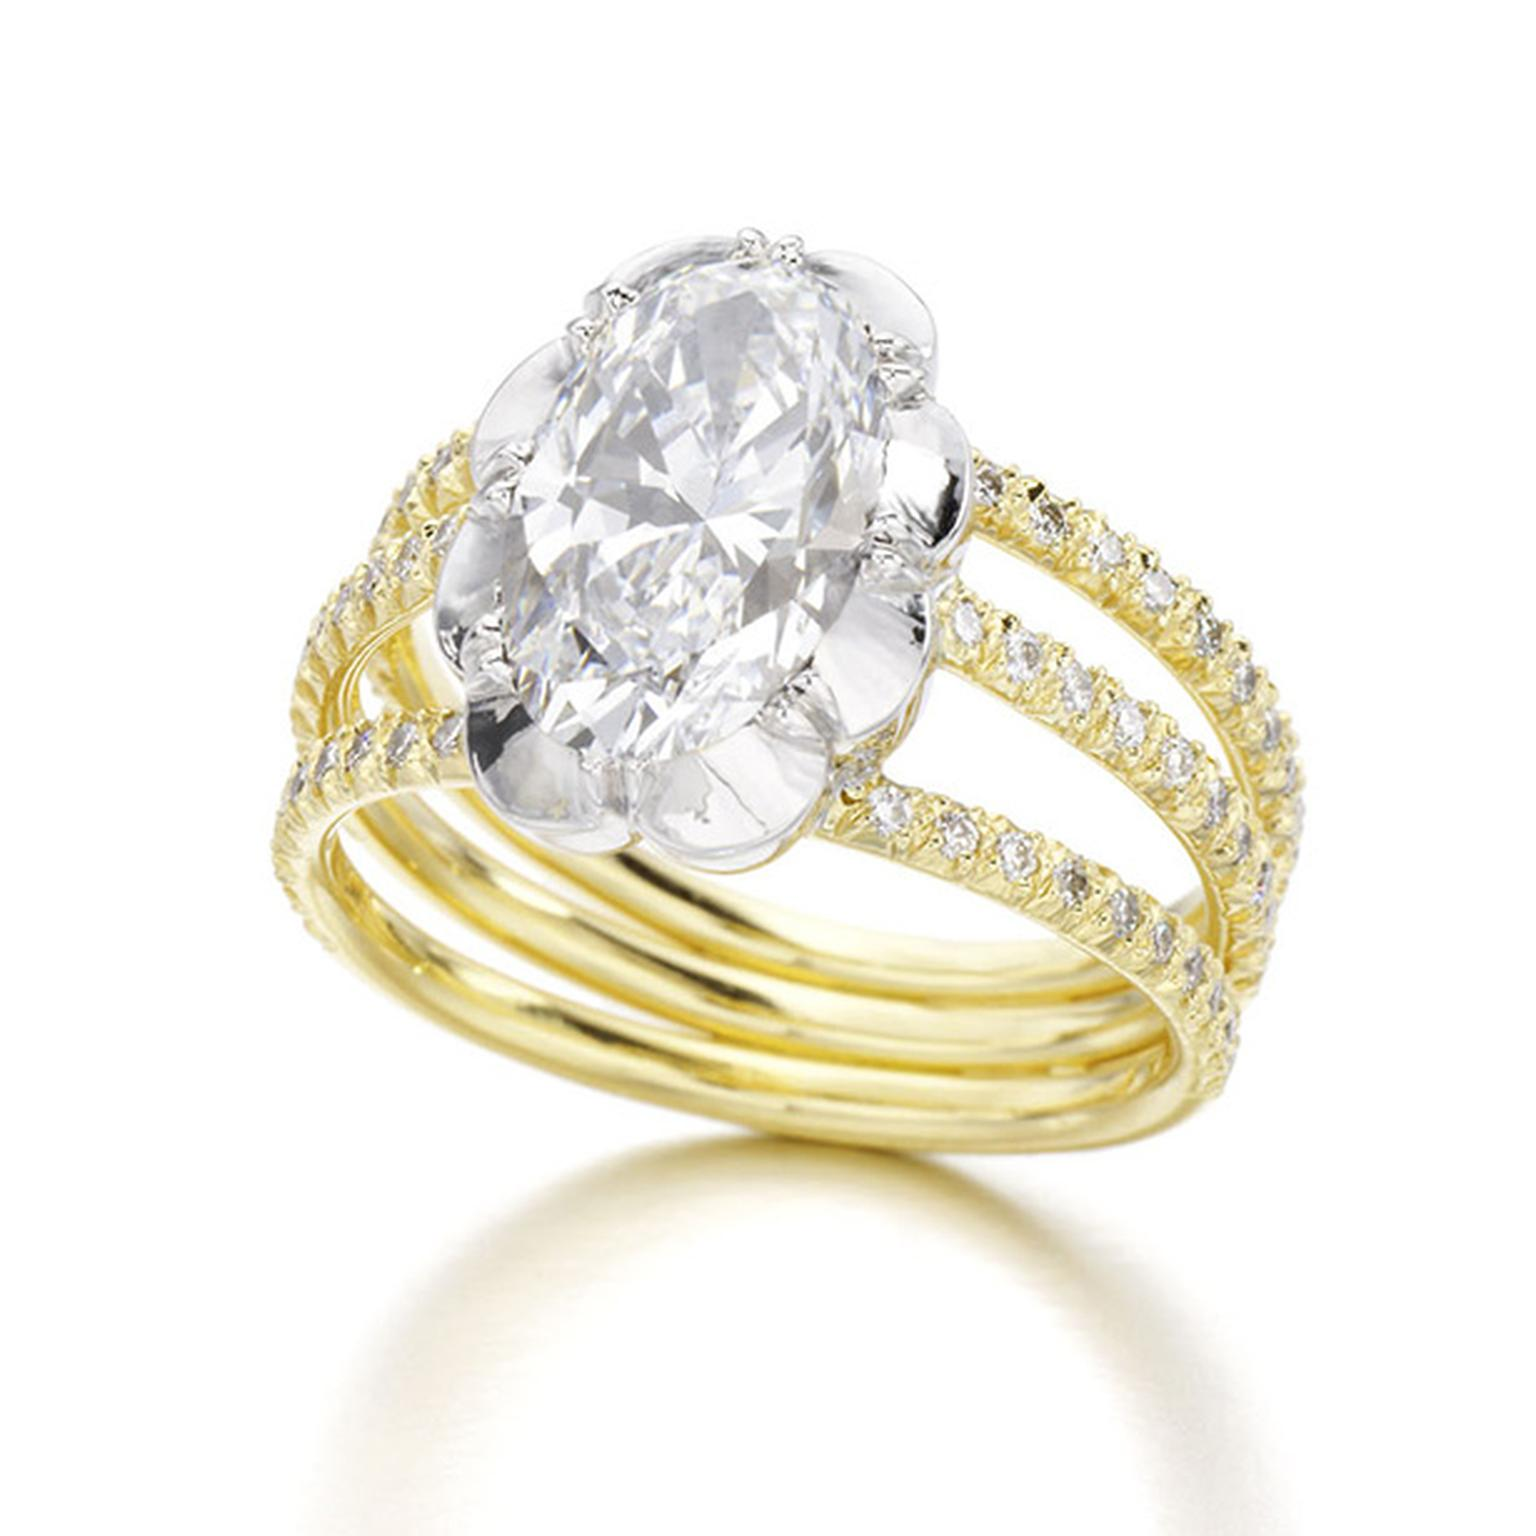 Jessica McCormack Oval Diamond Trio ring